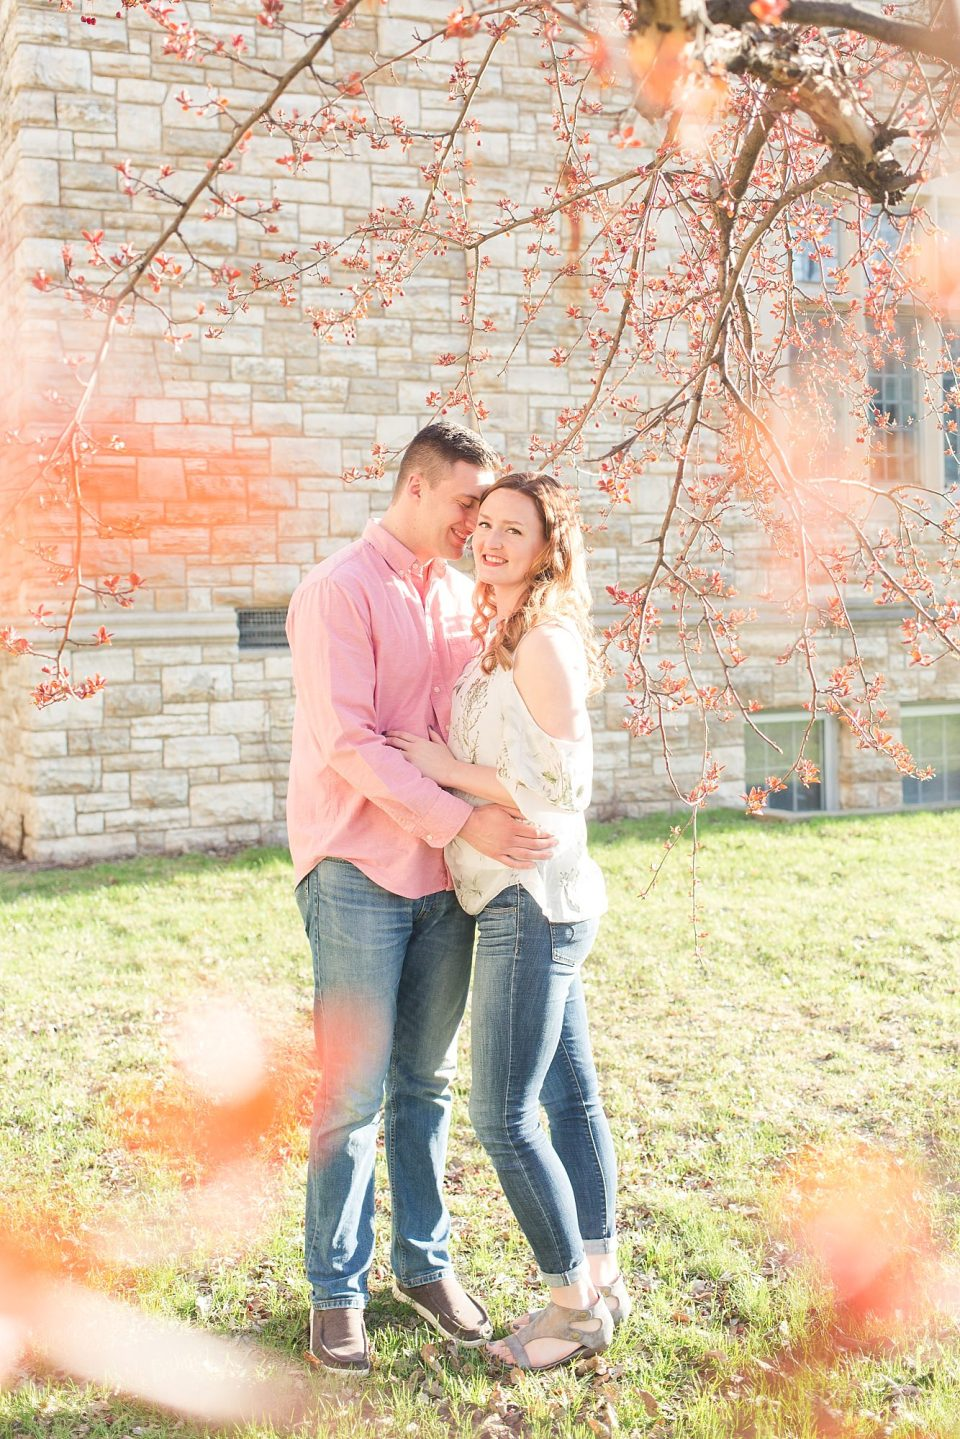 Spring Engagement Session in Shades of Pink Surrounded by Spring Blooms